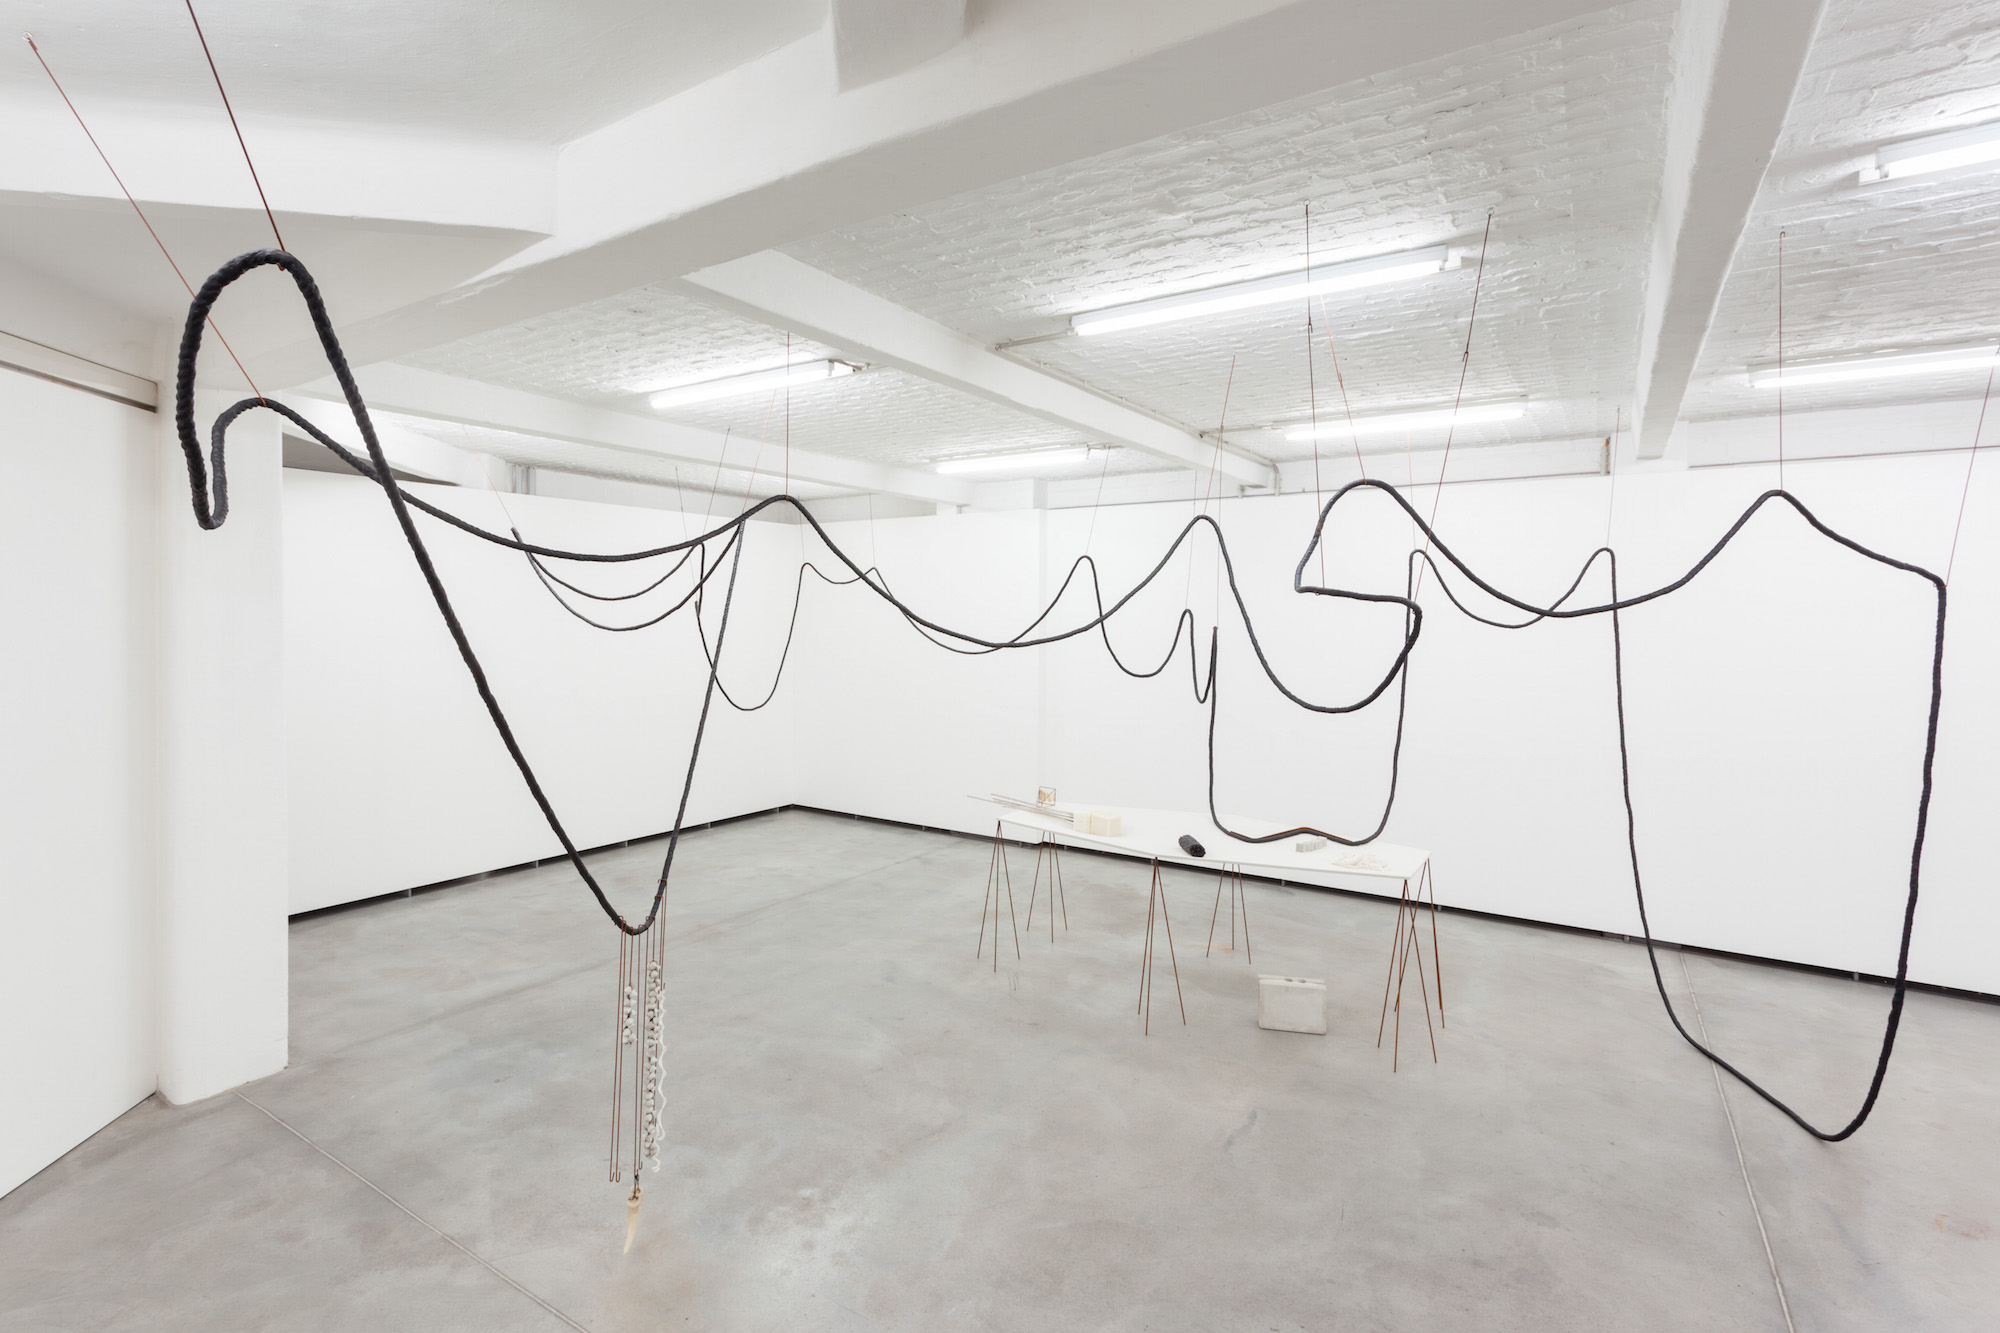 "Iza Tarasewicz, ""Collaborating Objects Radiating Environments"", Kuntlerhaus Bethanien, 2014, Berlin, for. Ivo Gretener (źródło: materiały prasowe organizatora)"